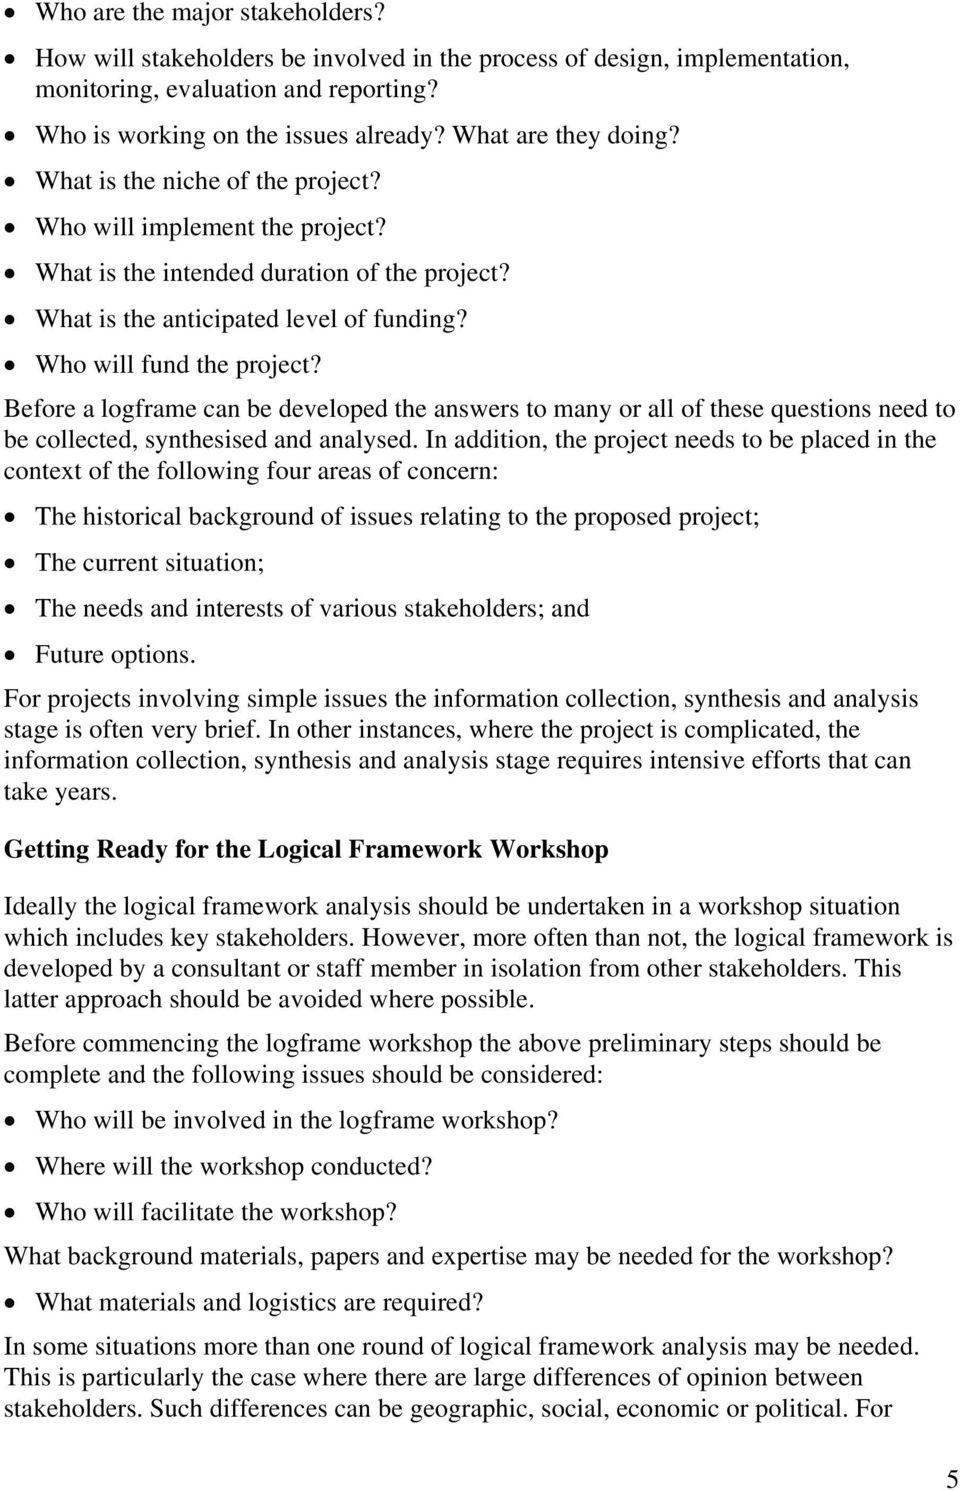 Designing Projects And Project Evaluations Using The Logical